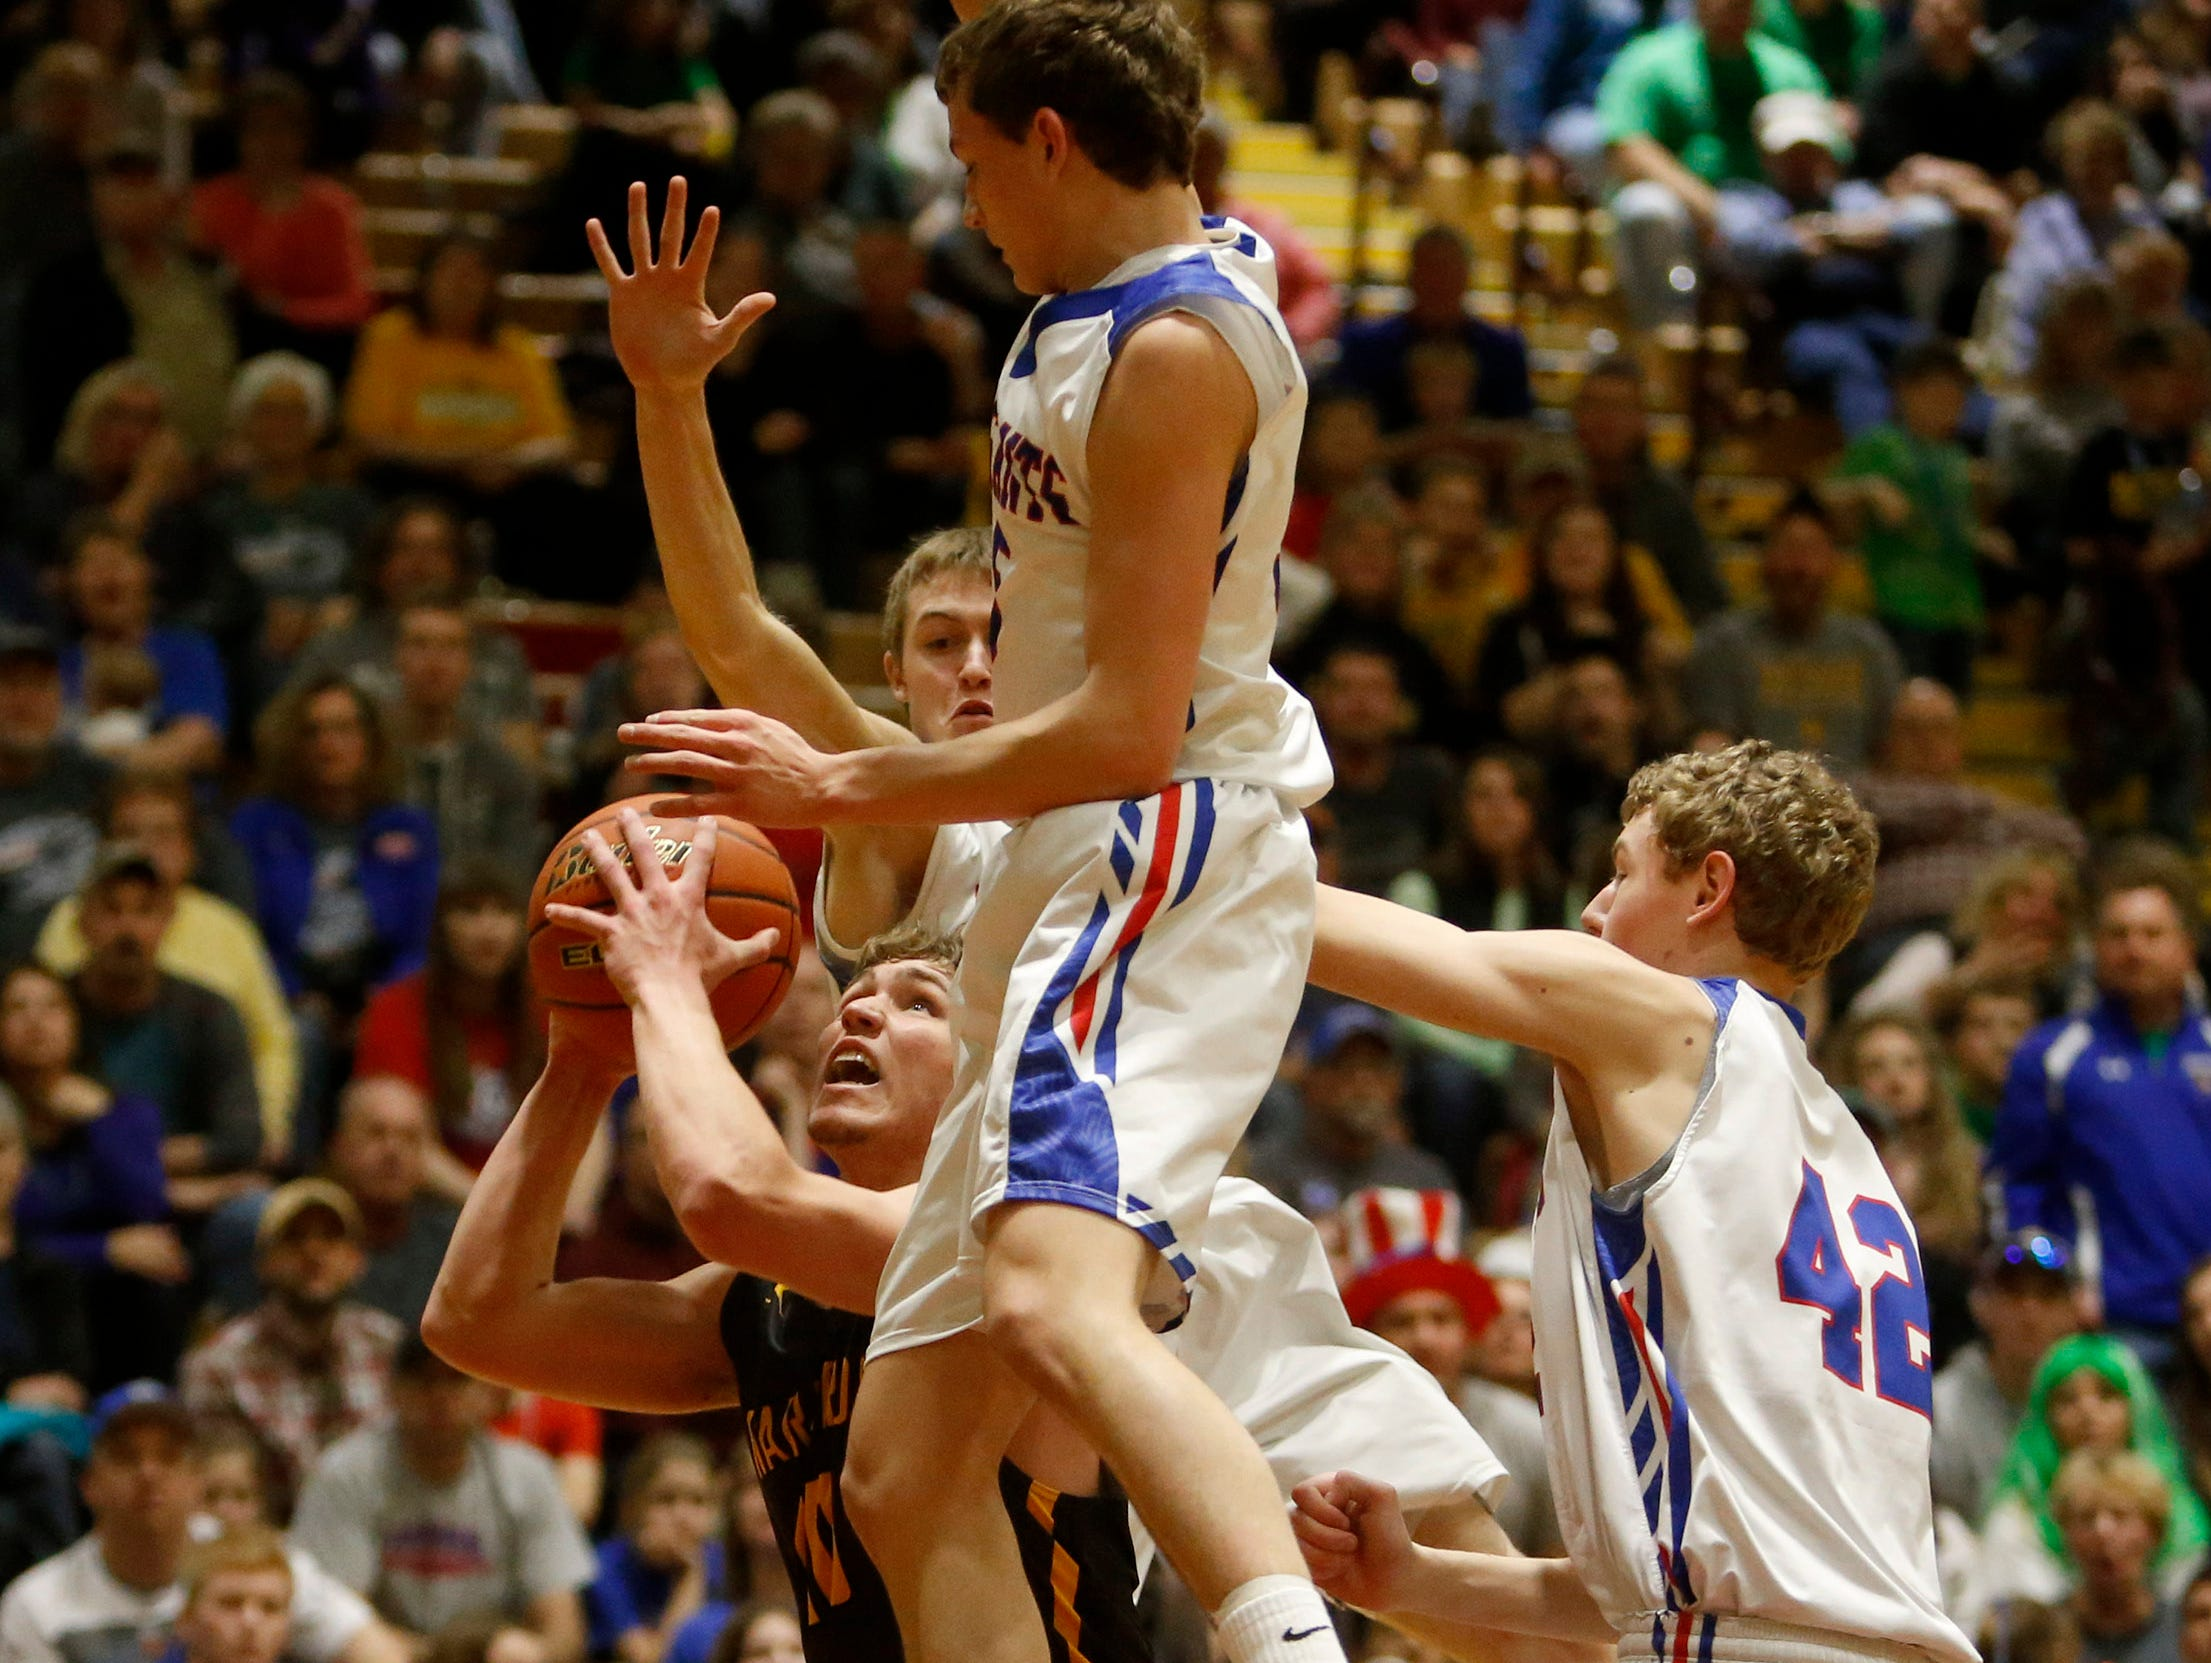 Wolsey-Wessington's Darin Tschetter, left, looks for a clear shot under the basket as Parker's Shane Kasten, front center, Chayse McKenney, back center and Camden Bialas, right, defend during Friday's semi-final game at the South Dakota Class B Boys Basketball Tournament at Wachs Arena. American News Photo by John Davis taken 3/17/2017